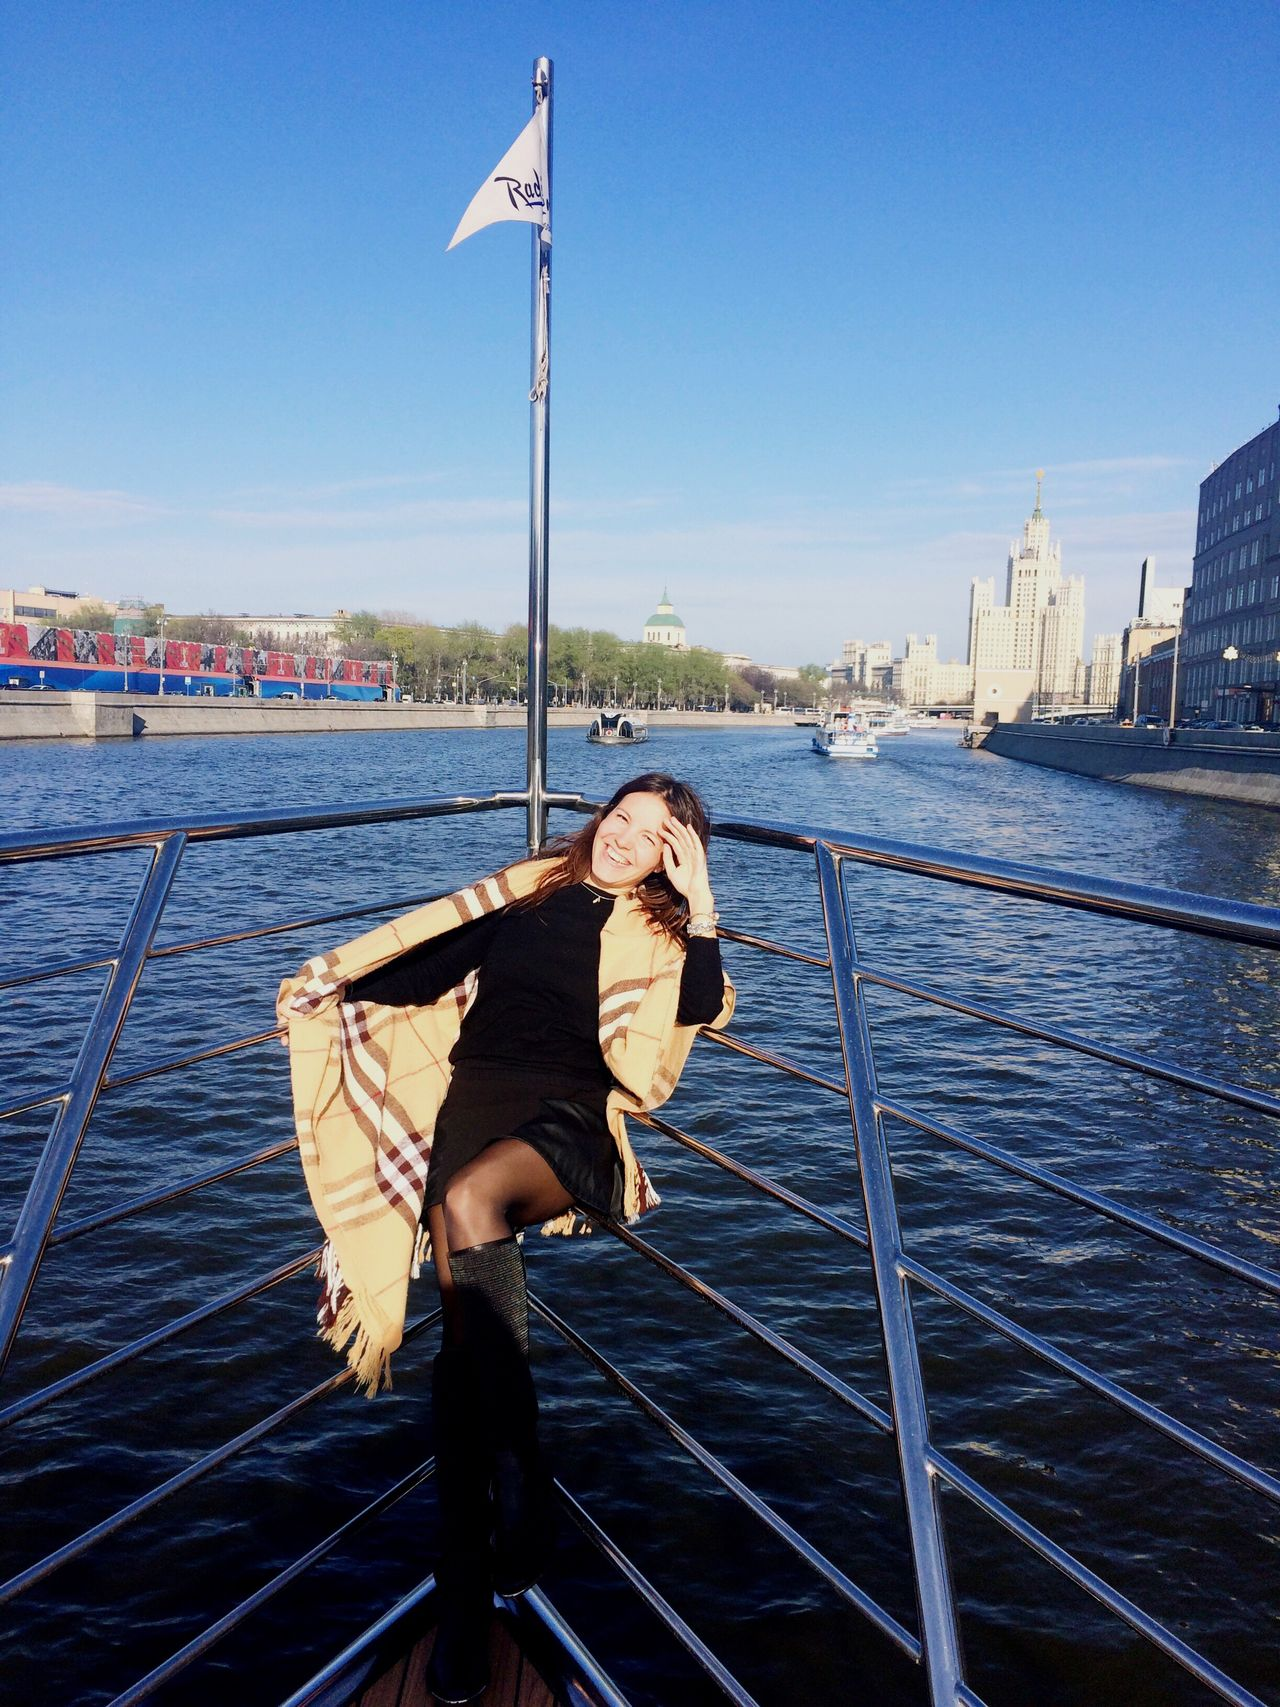 Nautical Vessel Water Outdoors Portrait Boat Deck One Person Young Women Moscow Beatiful Girl Beautiful Woman Traveling Travel Destinations Russia Smile Smiling Happiness Happy People